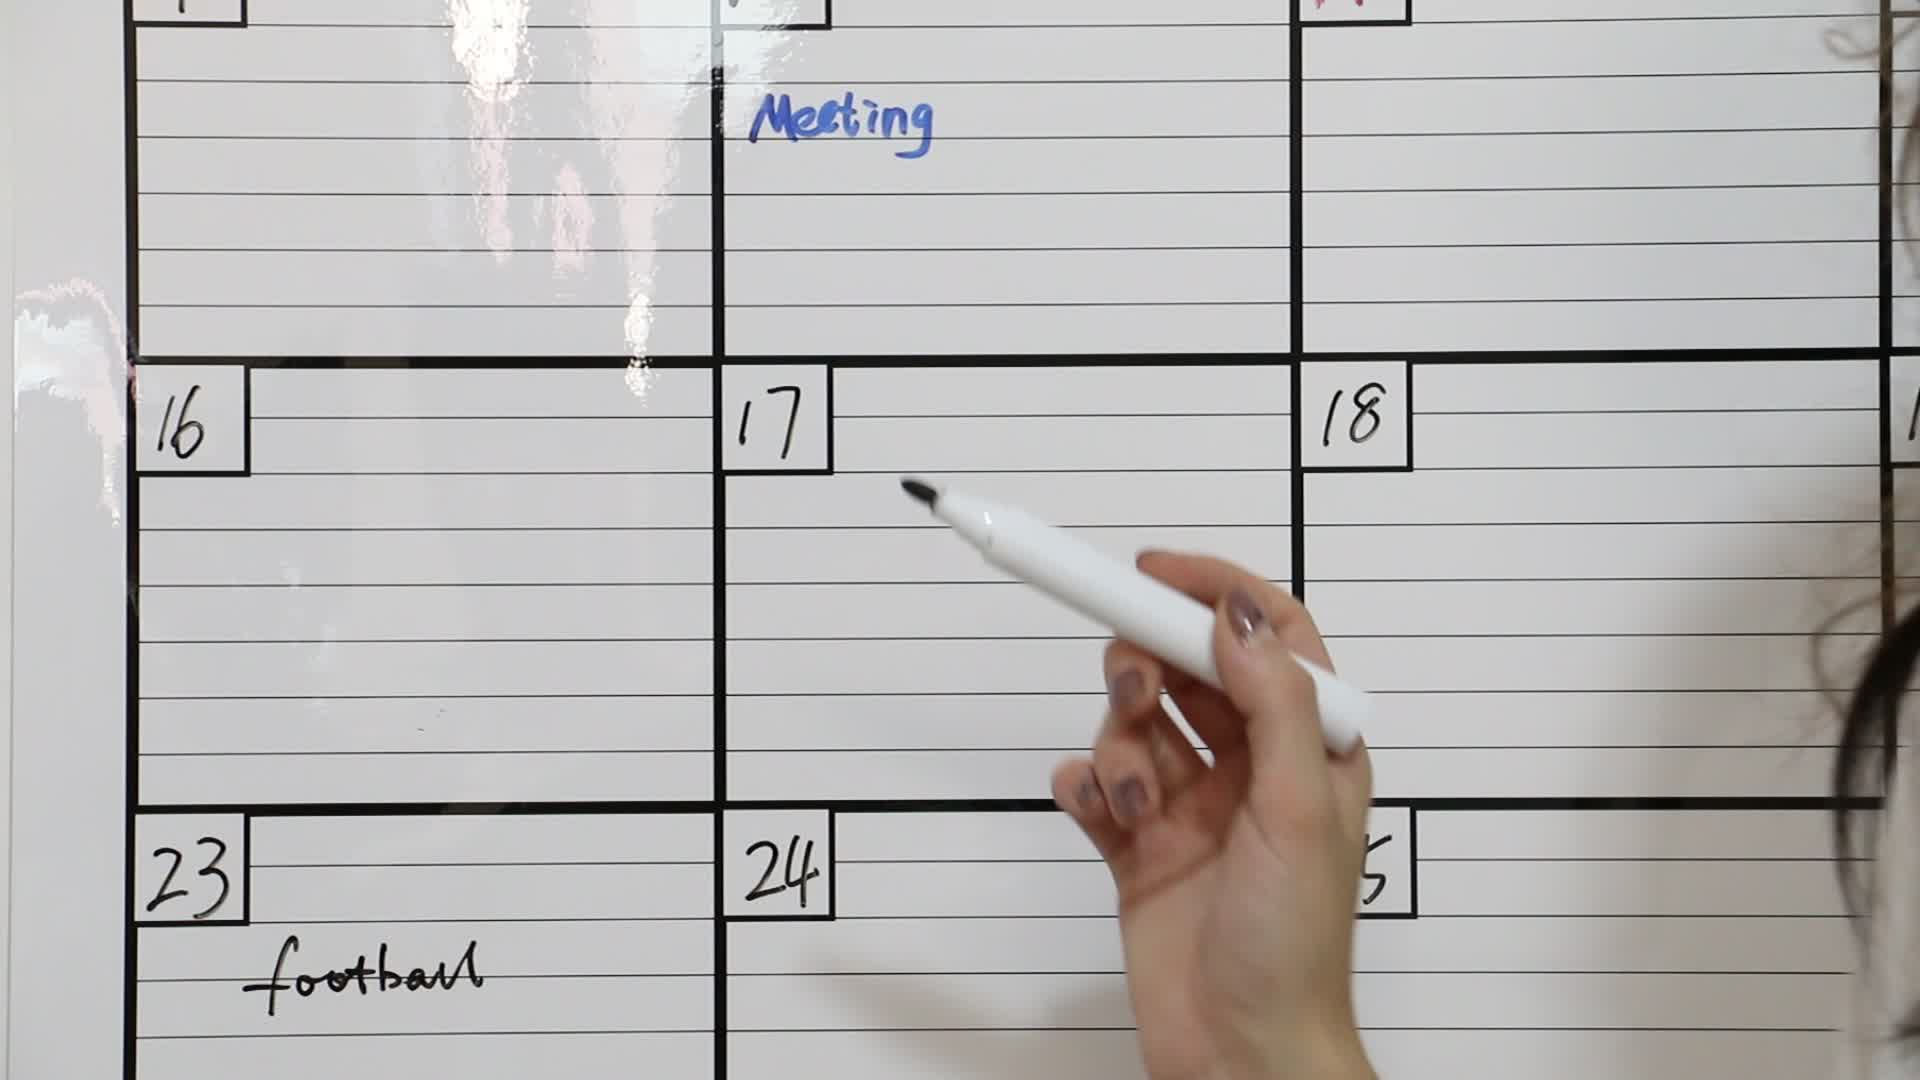 Jumbo 12 month undated dry erase board paper organizing academic wall calendar 2018-19  for office